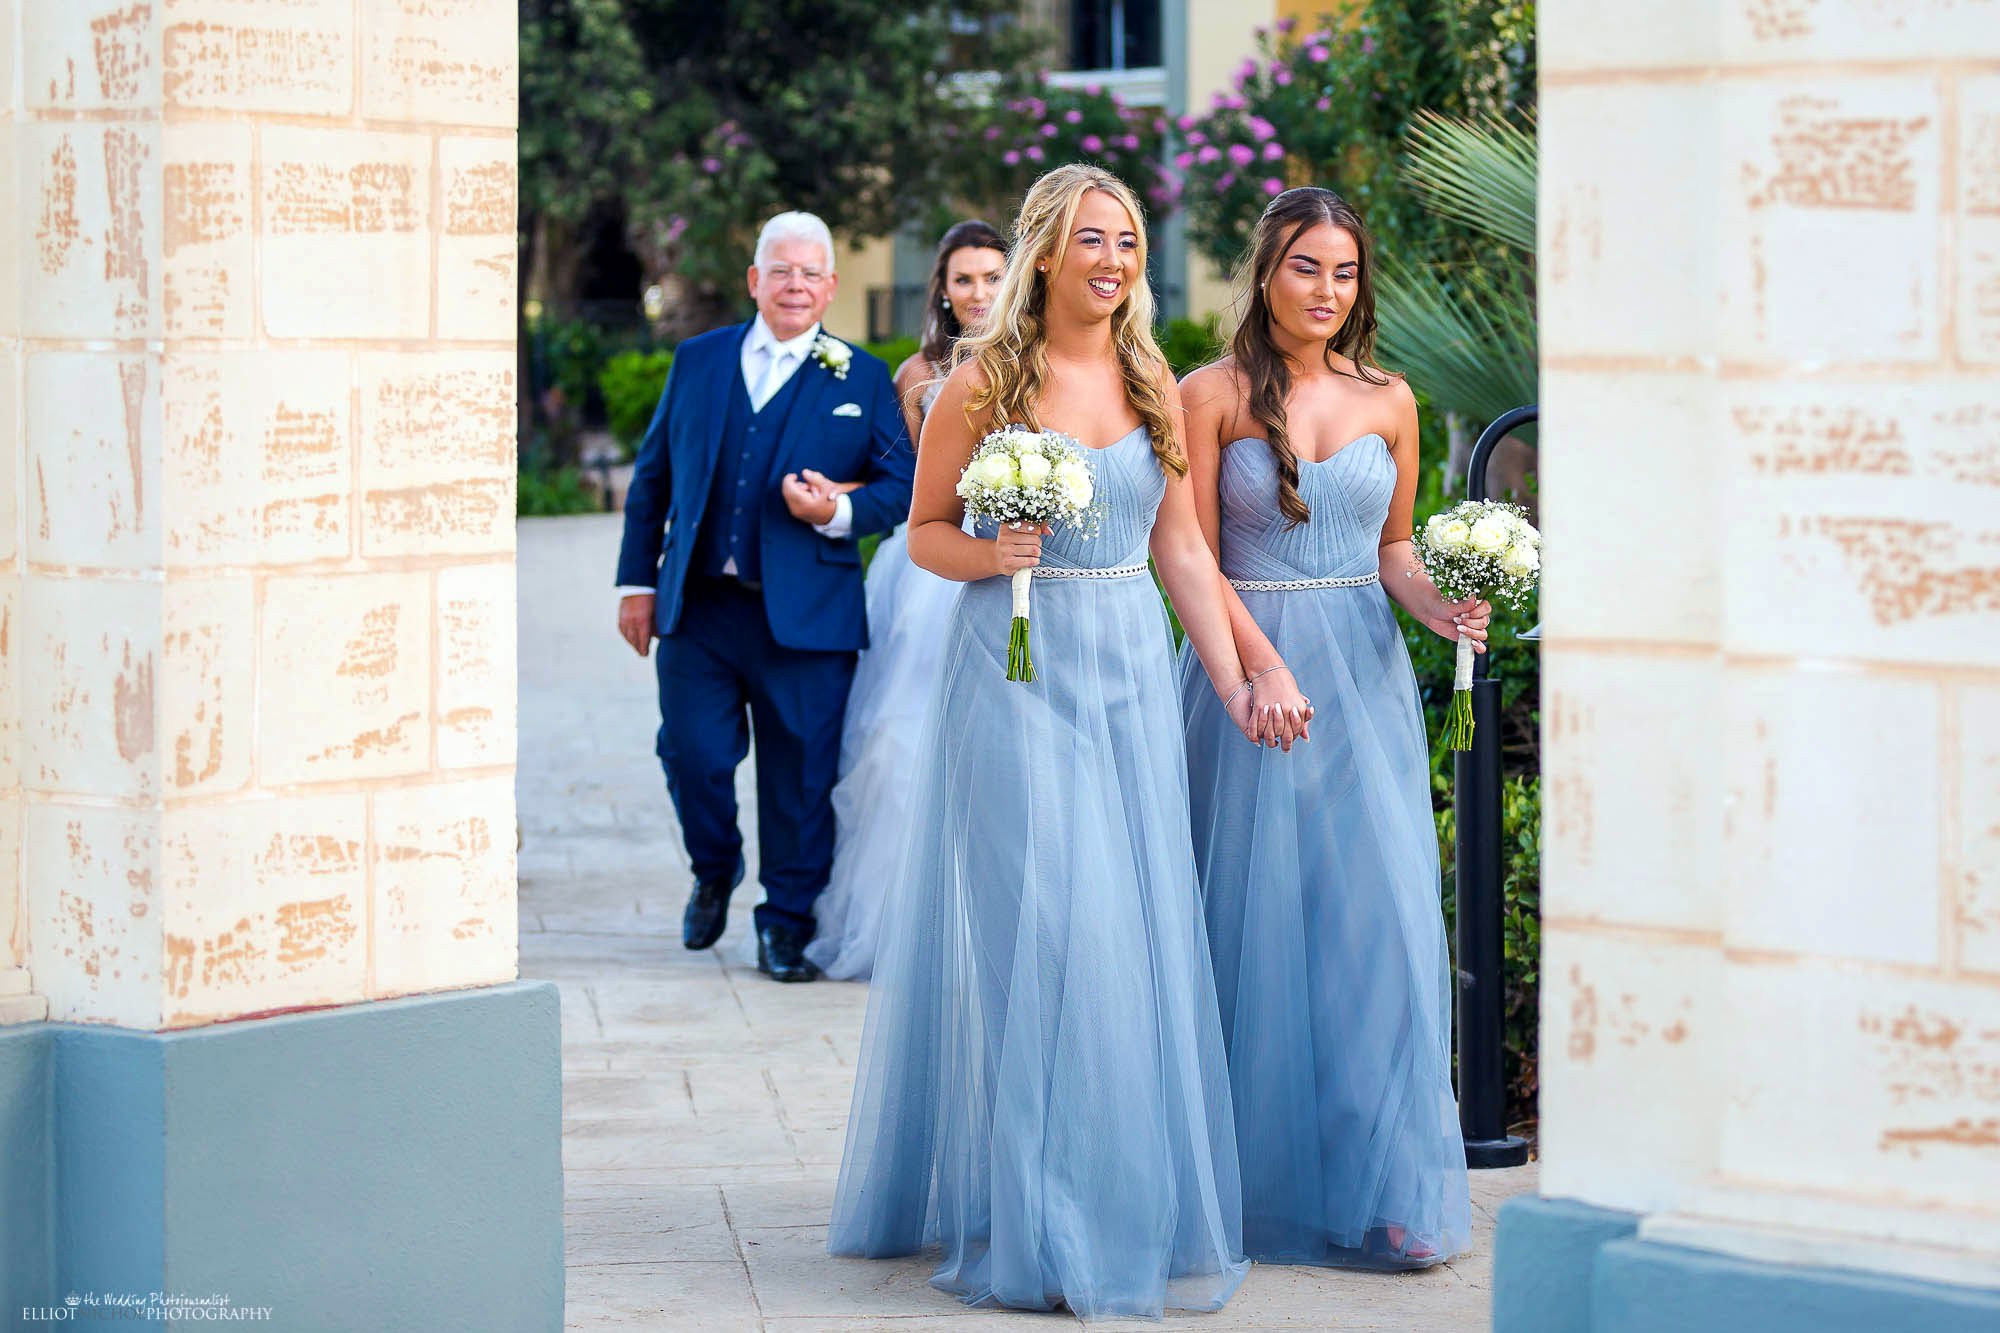 Bridesmaids in their blue dresses walk together during the procession towards the wedding ceremony. North East wedding photographer.